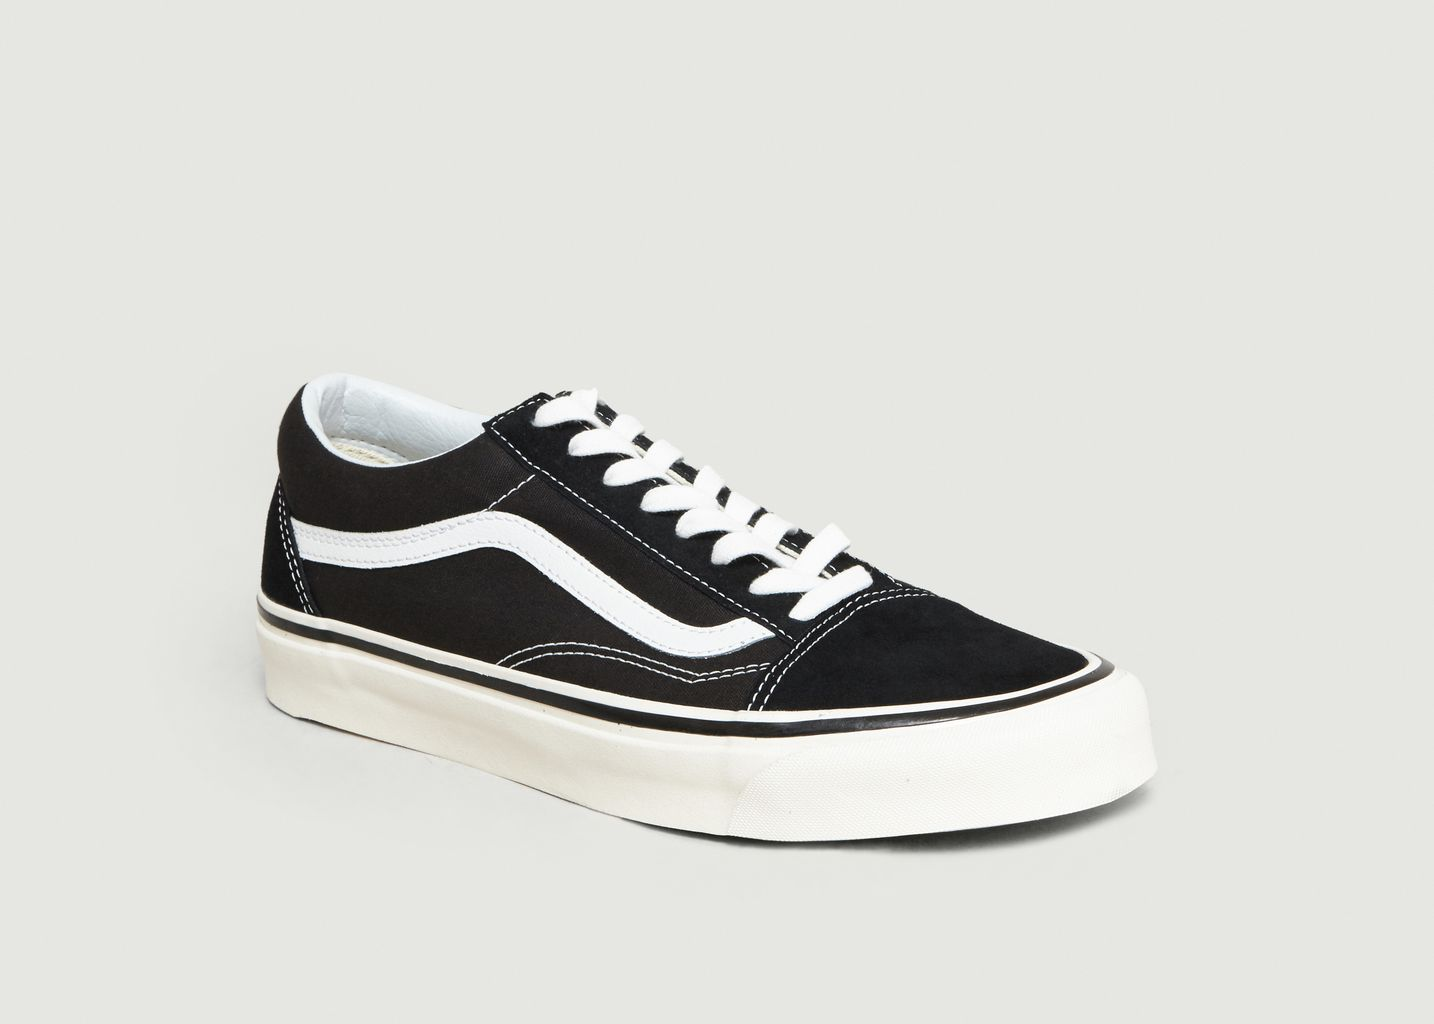 Baskets basses Vans Vente Outlet Direct usine Vans Old